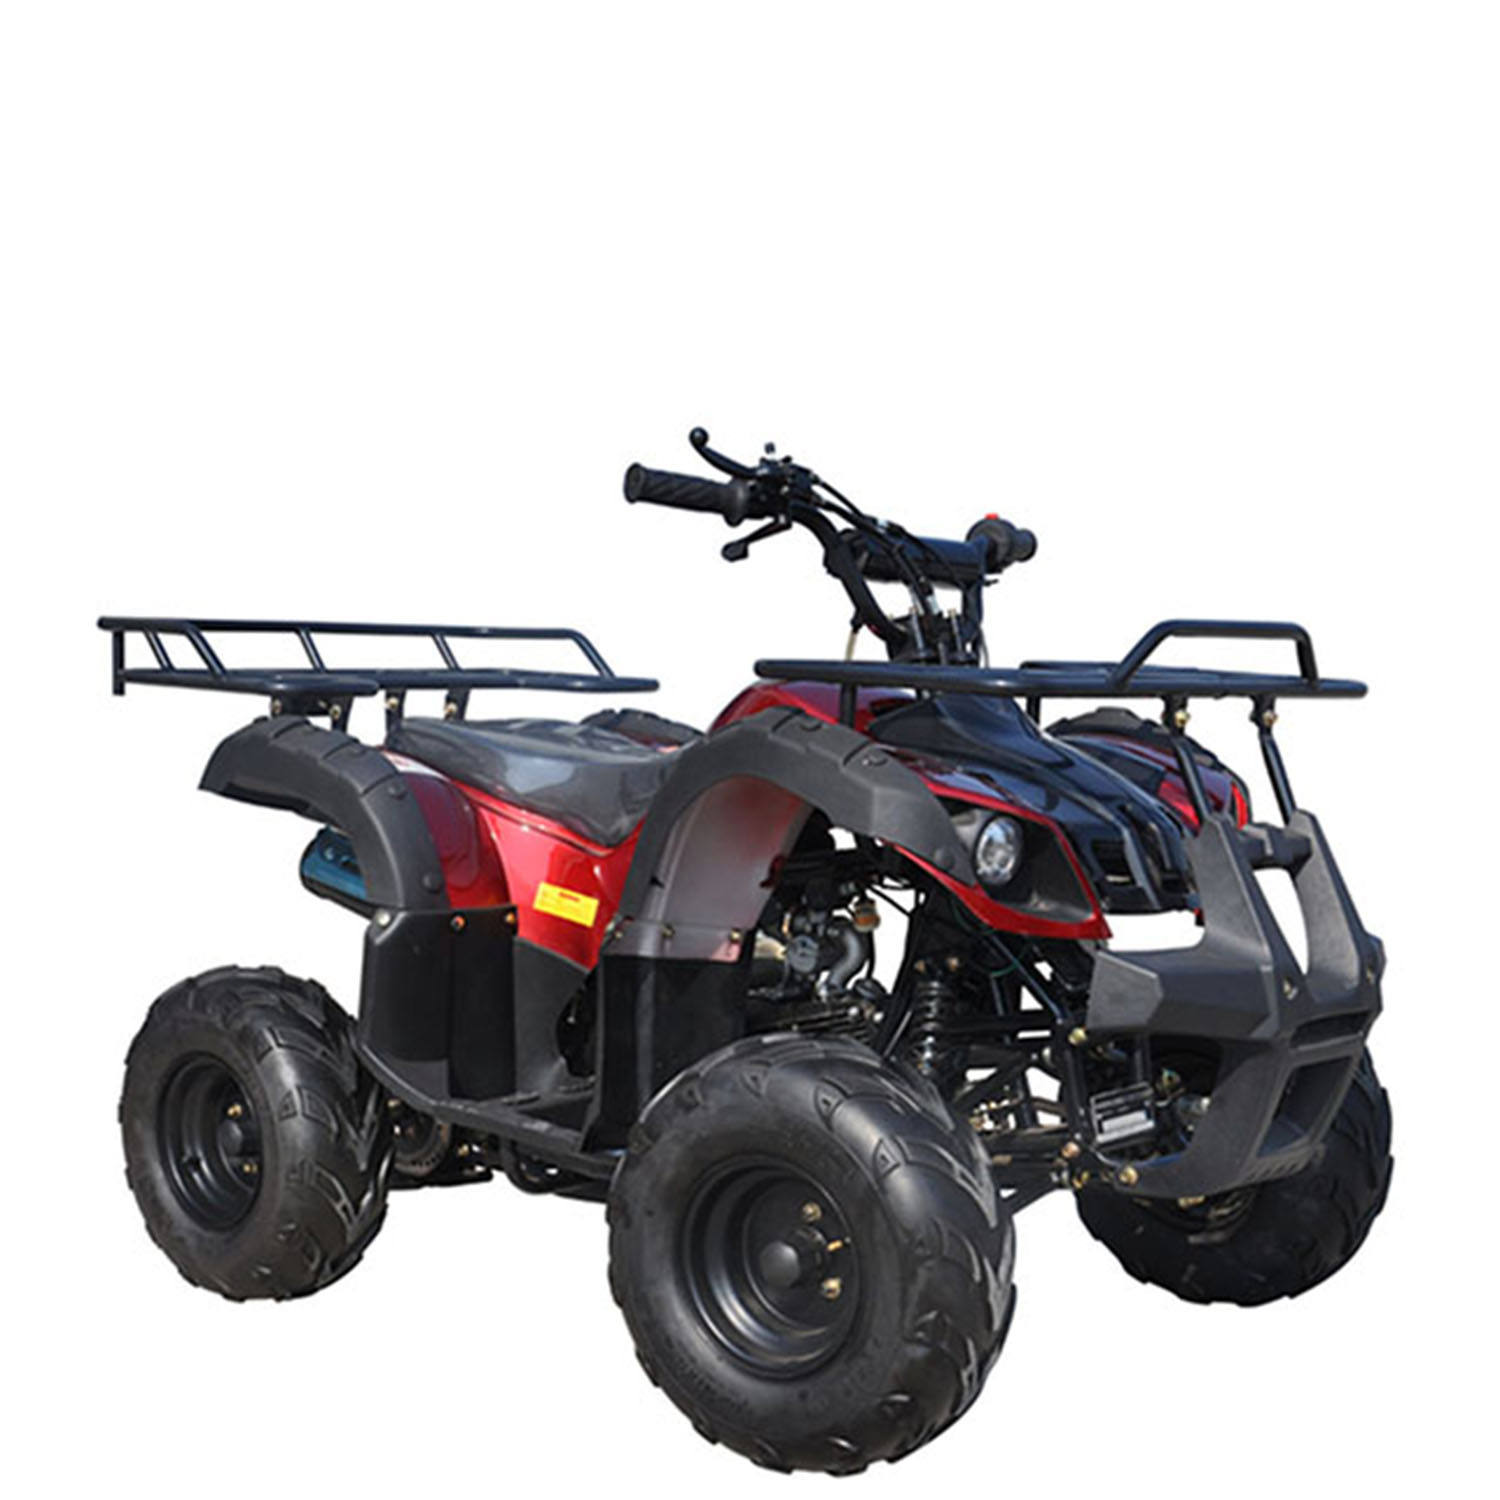 2019 Hot Selling Air-cooled 150cc ATV